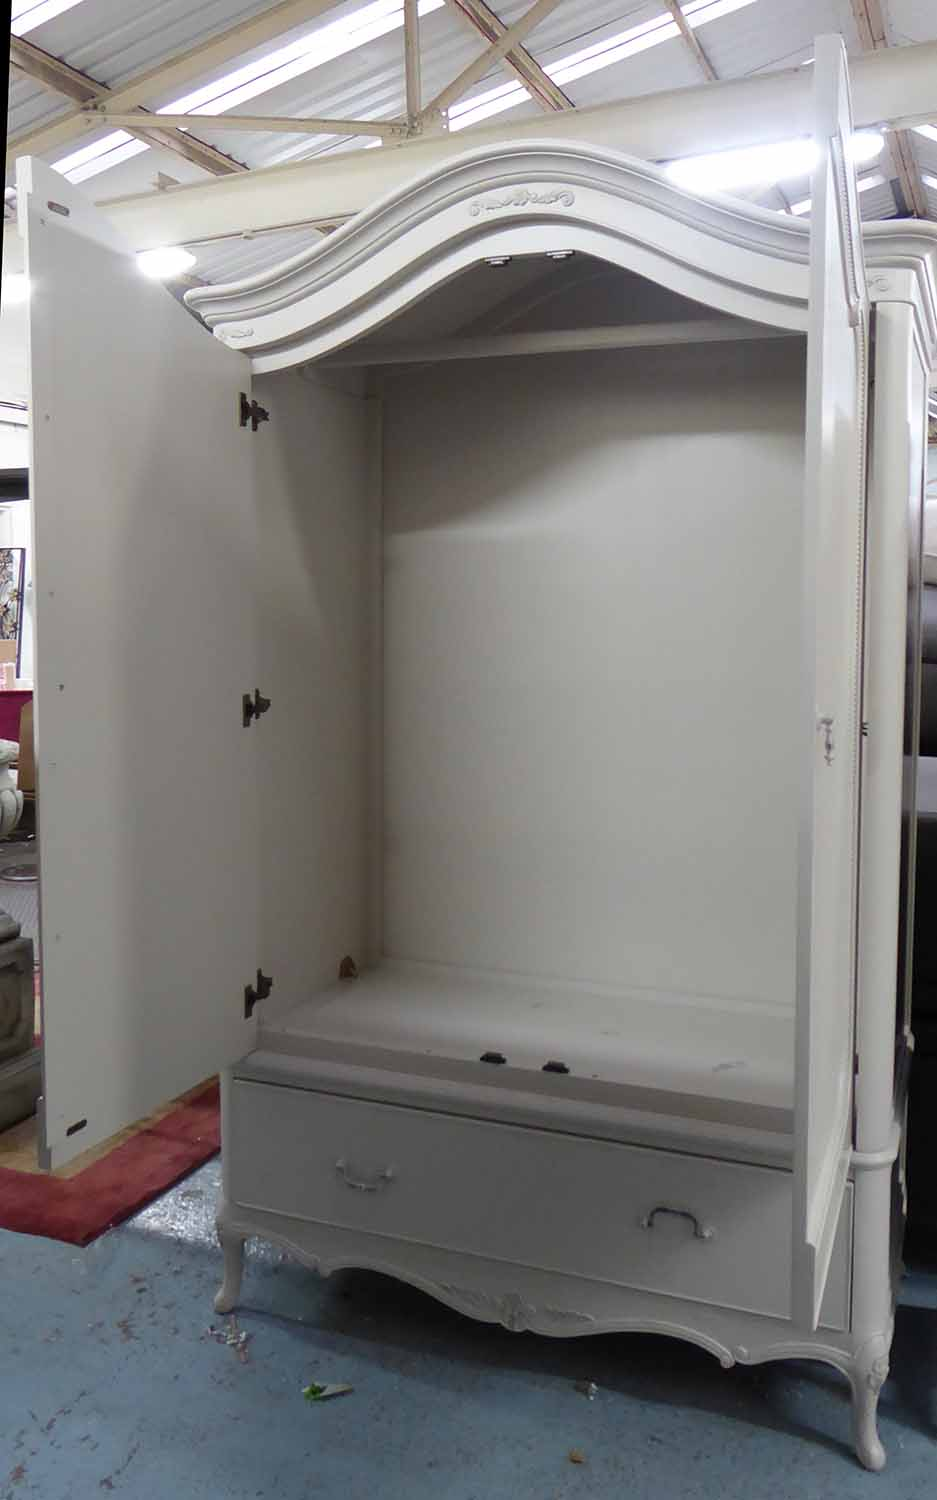 Lot 18 - WARDROBE, French style grey with hanging space over a drawer, 127cm x 206cm H x 67cm.